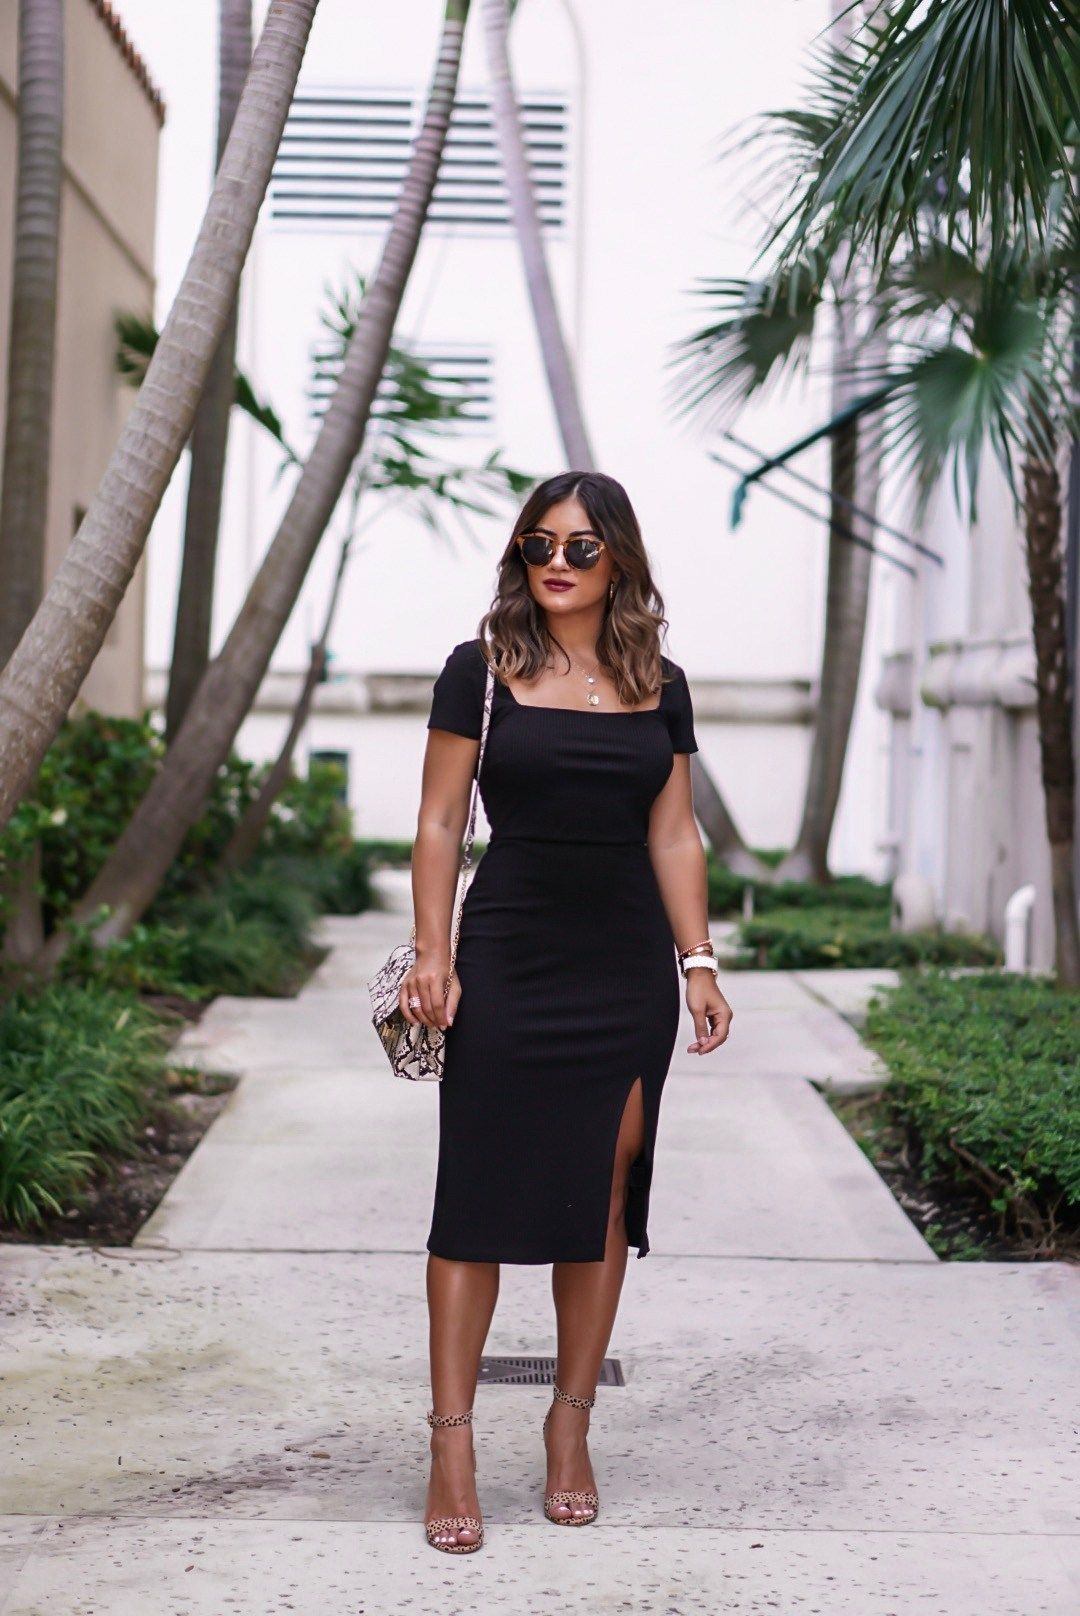 Miami Blogger Krista Perez Styles Flattering 50 Little Black Dress Outfit On Sugarlovechic Com Little Black Dress Outfit Fashion Little Black Dress [ 1616 x 1080 Pixel ]